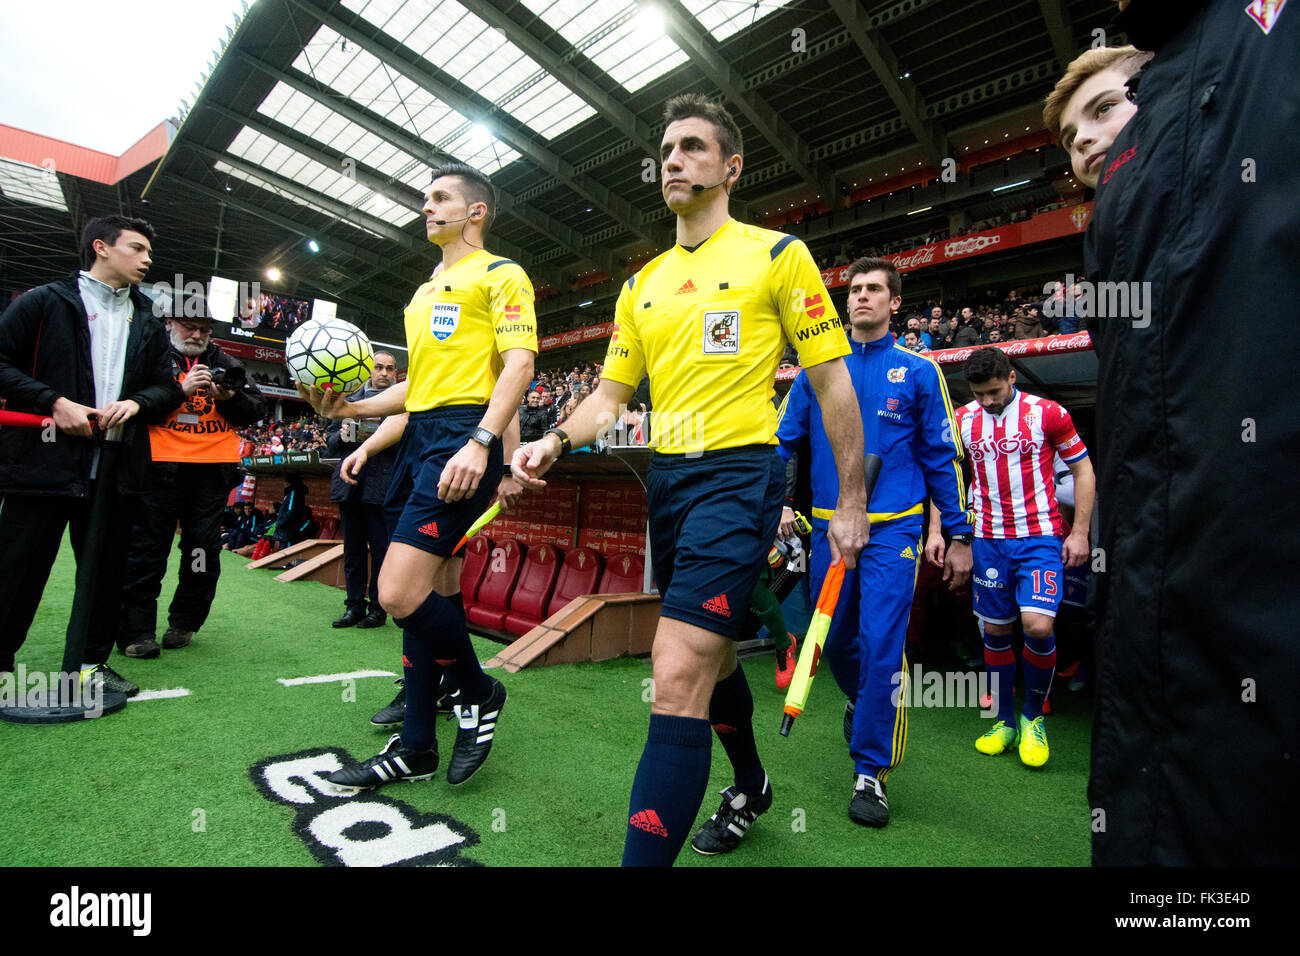 Gijon, Spain. 6th March, 2016. Carlos del Cerro (referee) during the football match of Spanish 'La Liga' between - Stock Image